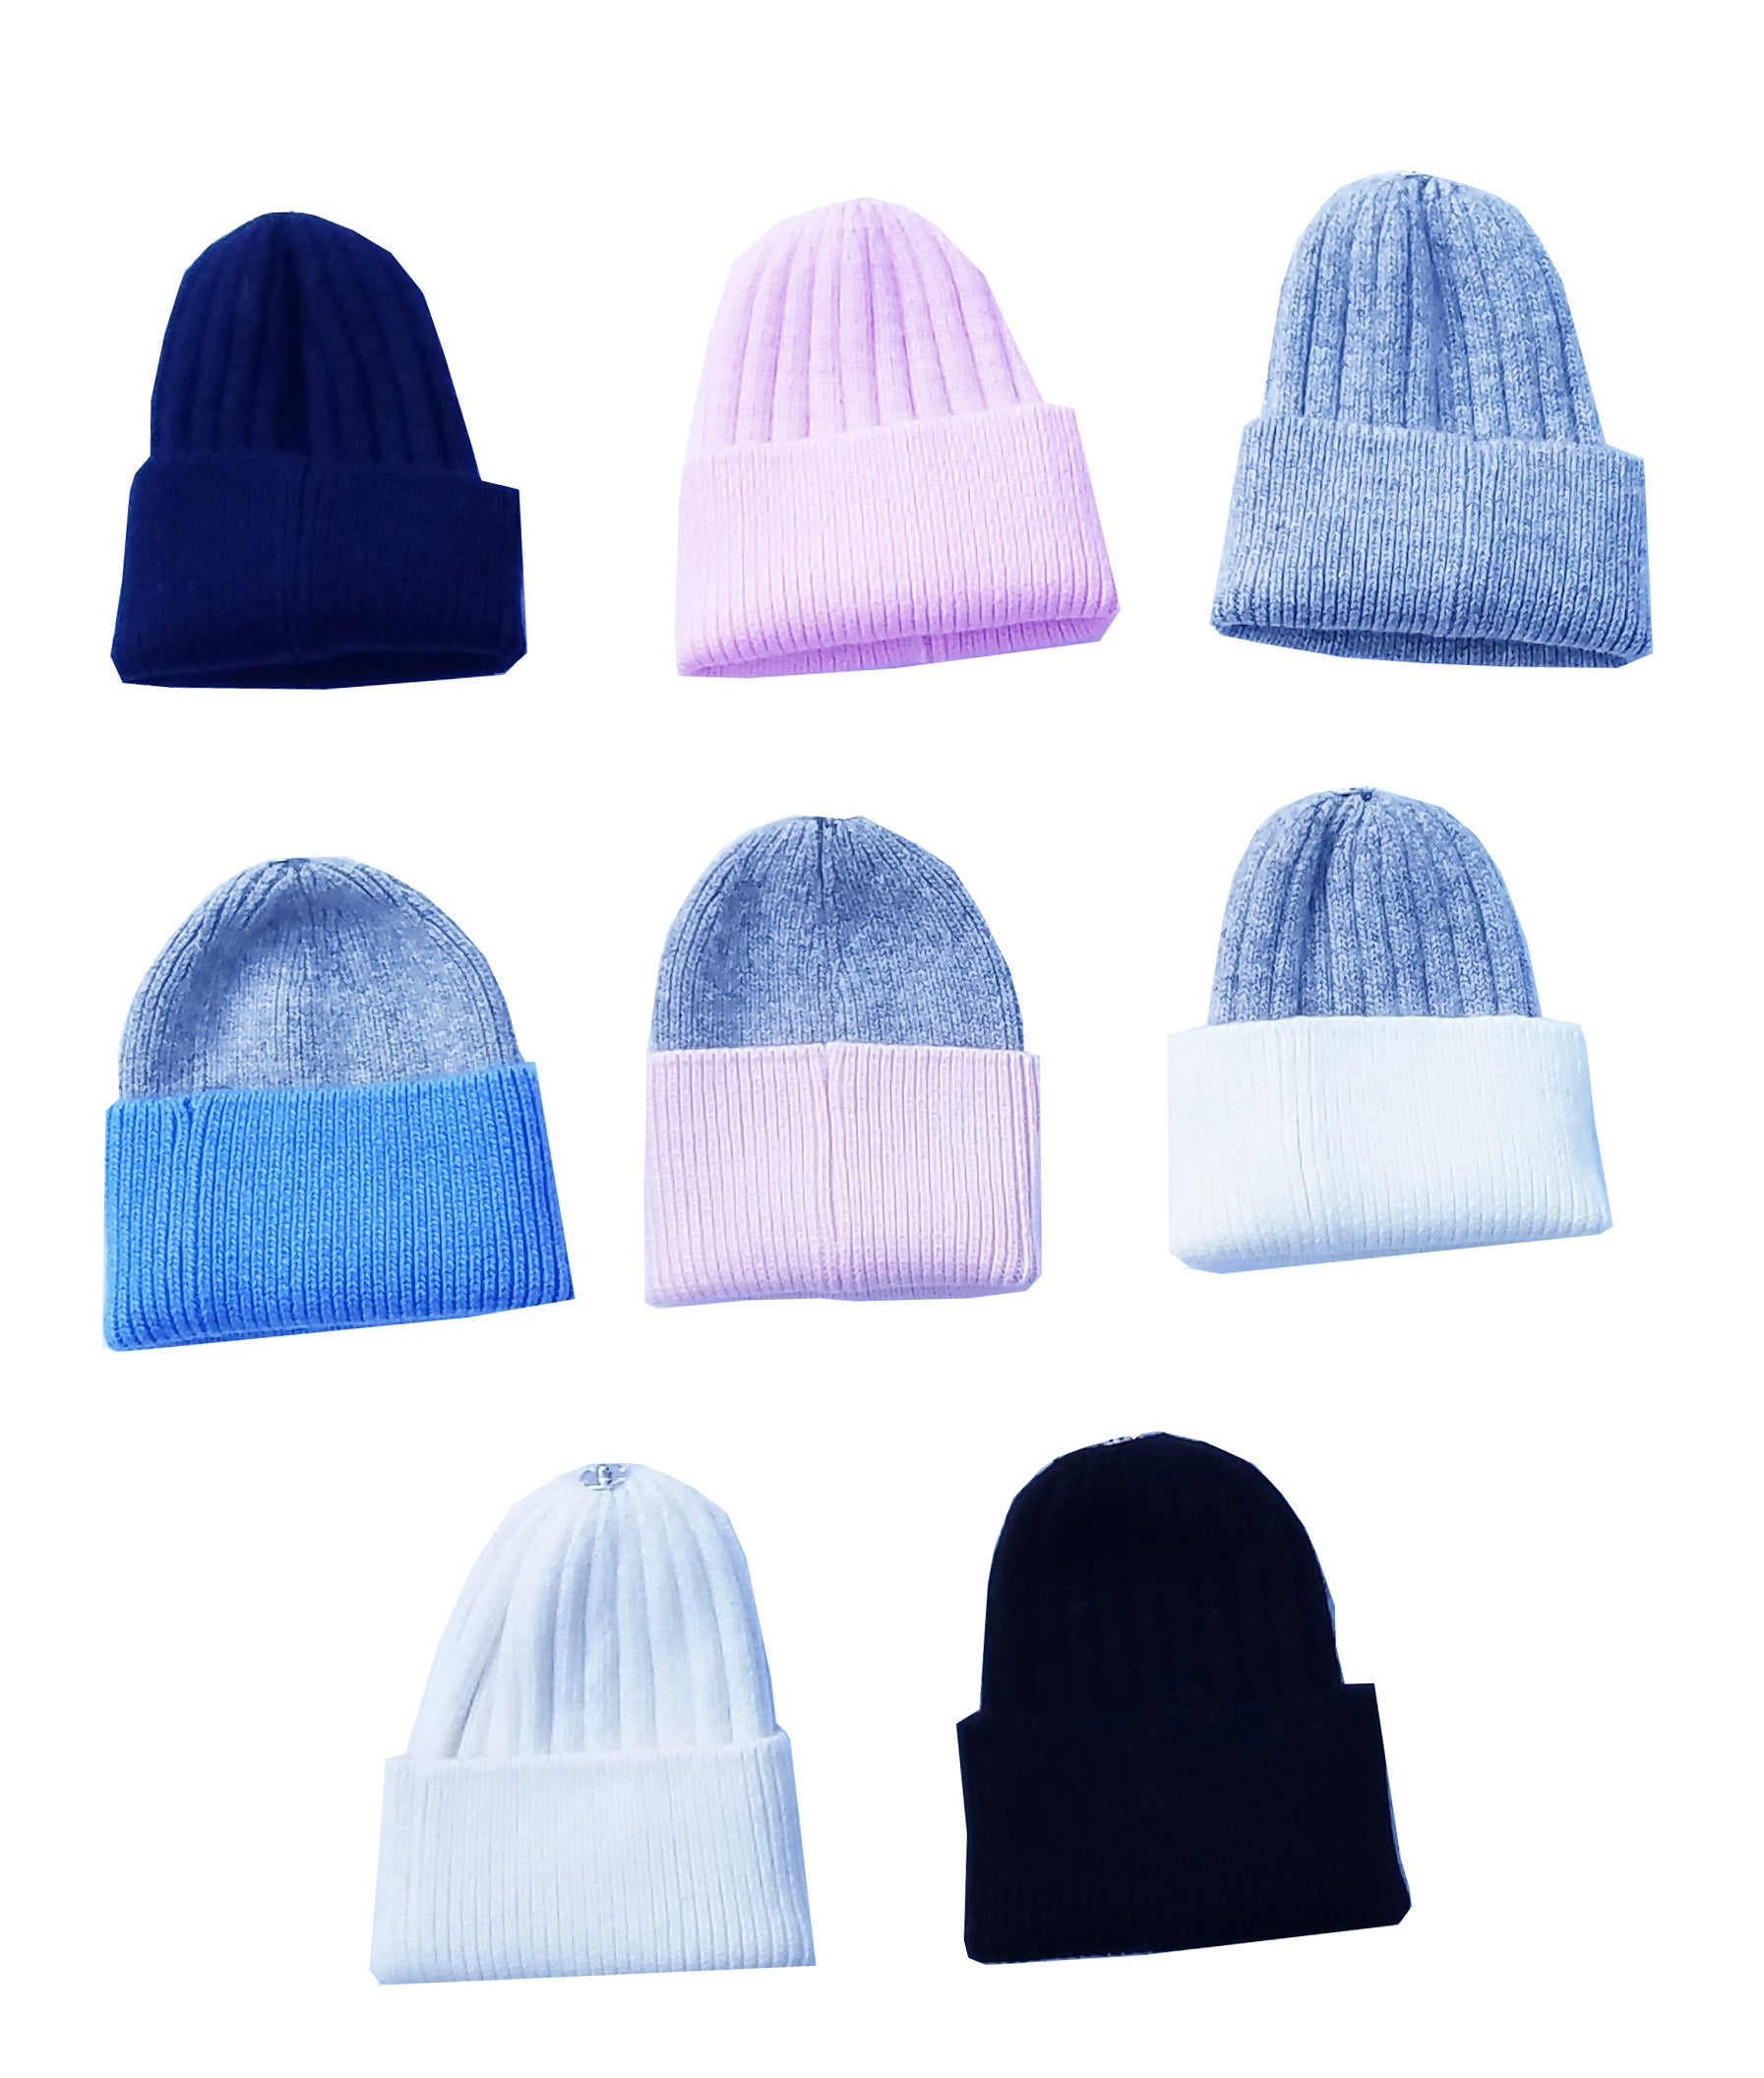 Cashmere Beanies Bee-nies No Pompom